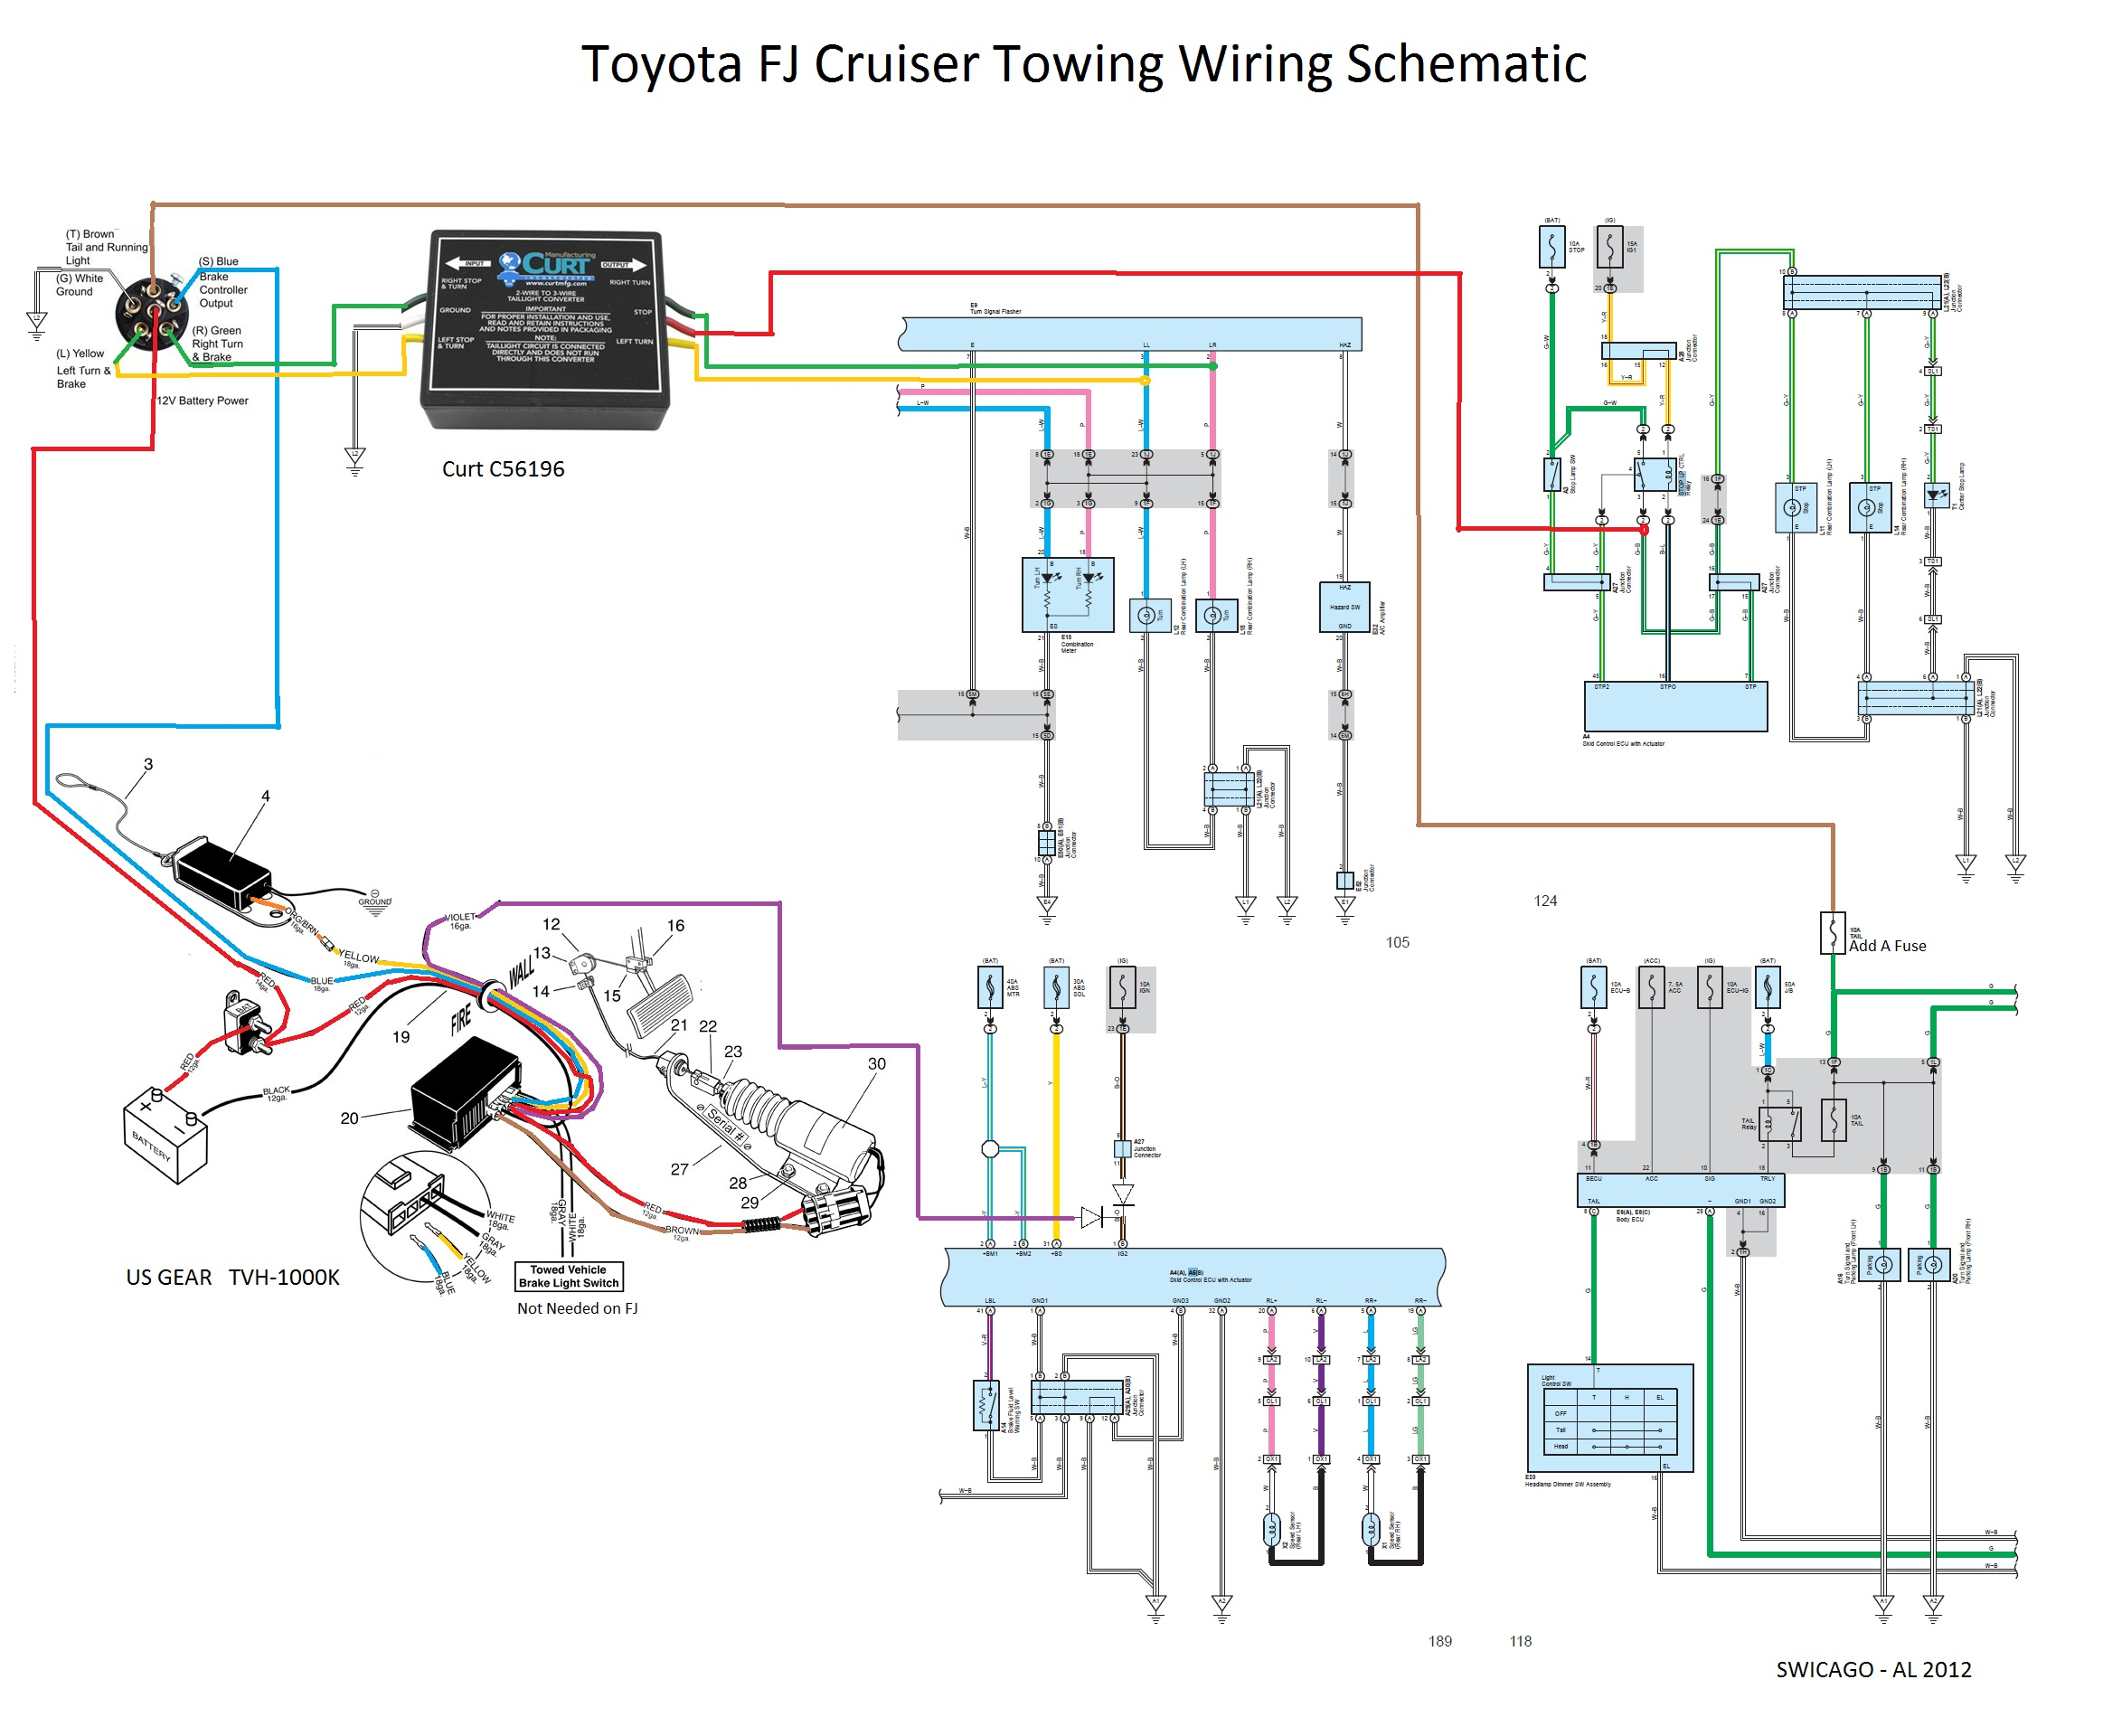 2014 Toyota Wiring Diagram - Wiring Diagram All snow-about -  snow-about.huevoprint.it | 2014 Toyota Sequoia Wiring Diagram |  | Huevoprint